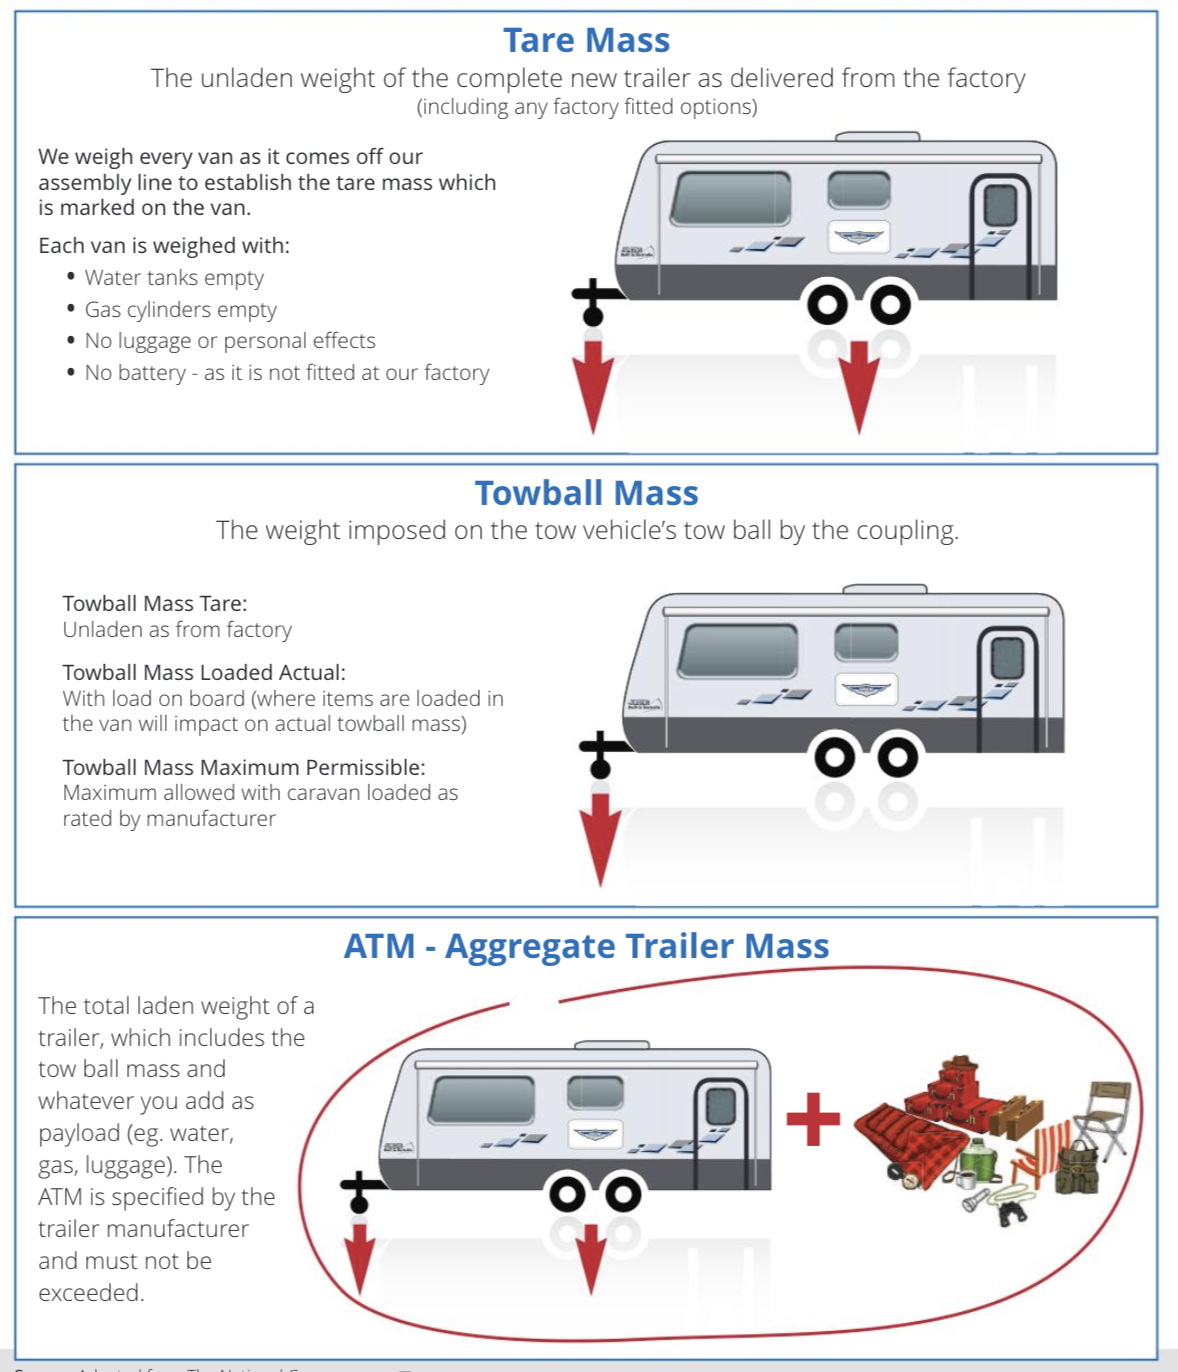 A diagram explaining aggregate trailer mass.